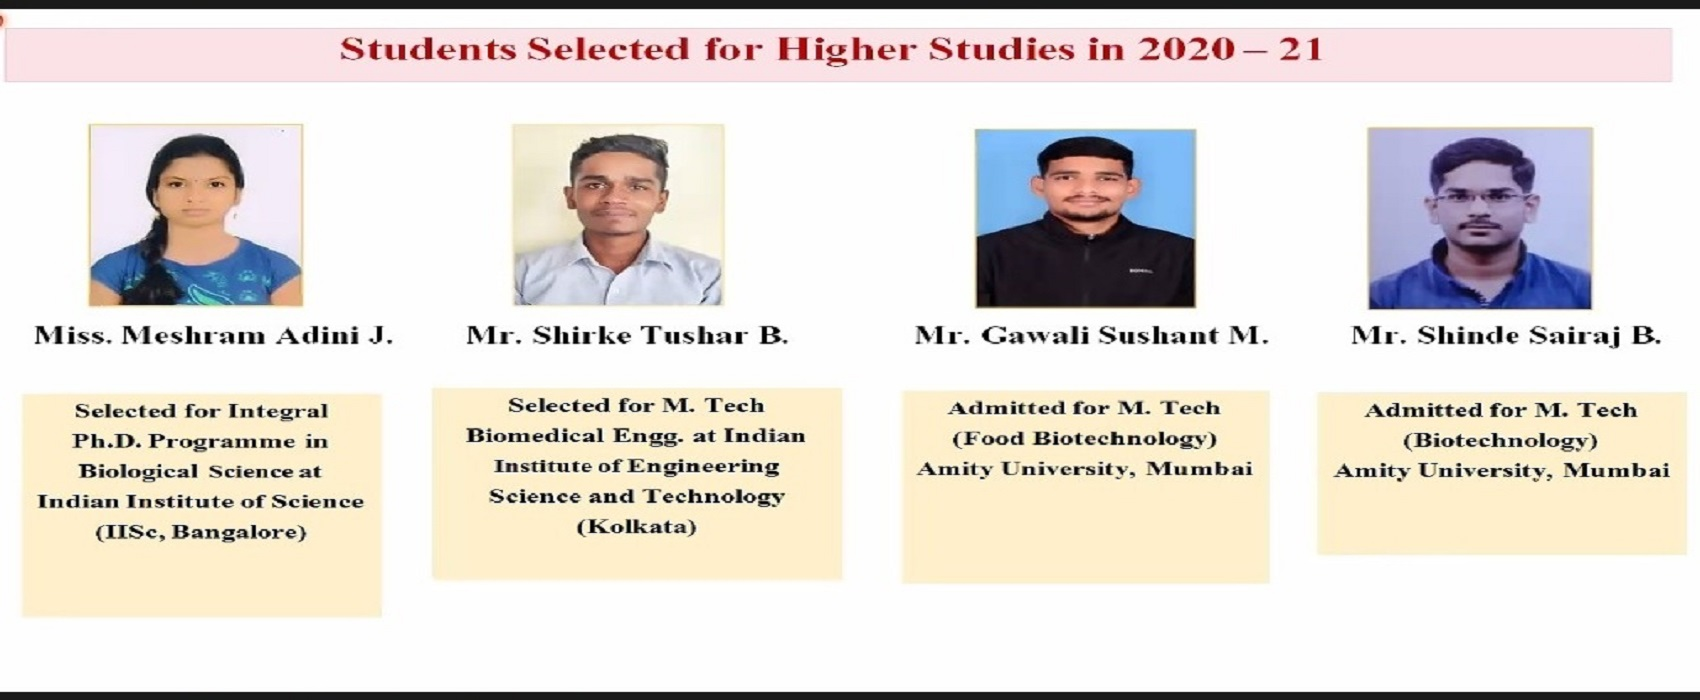 Final year students selected for Higher education 2021